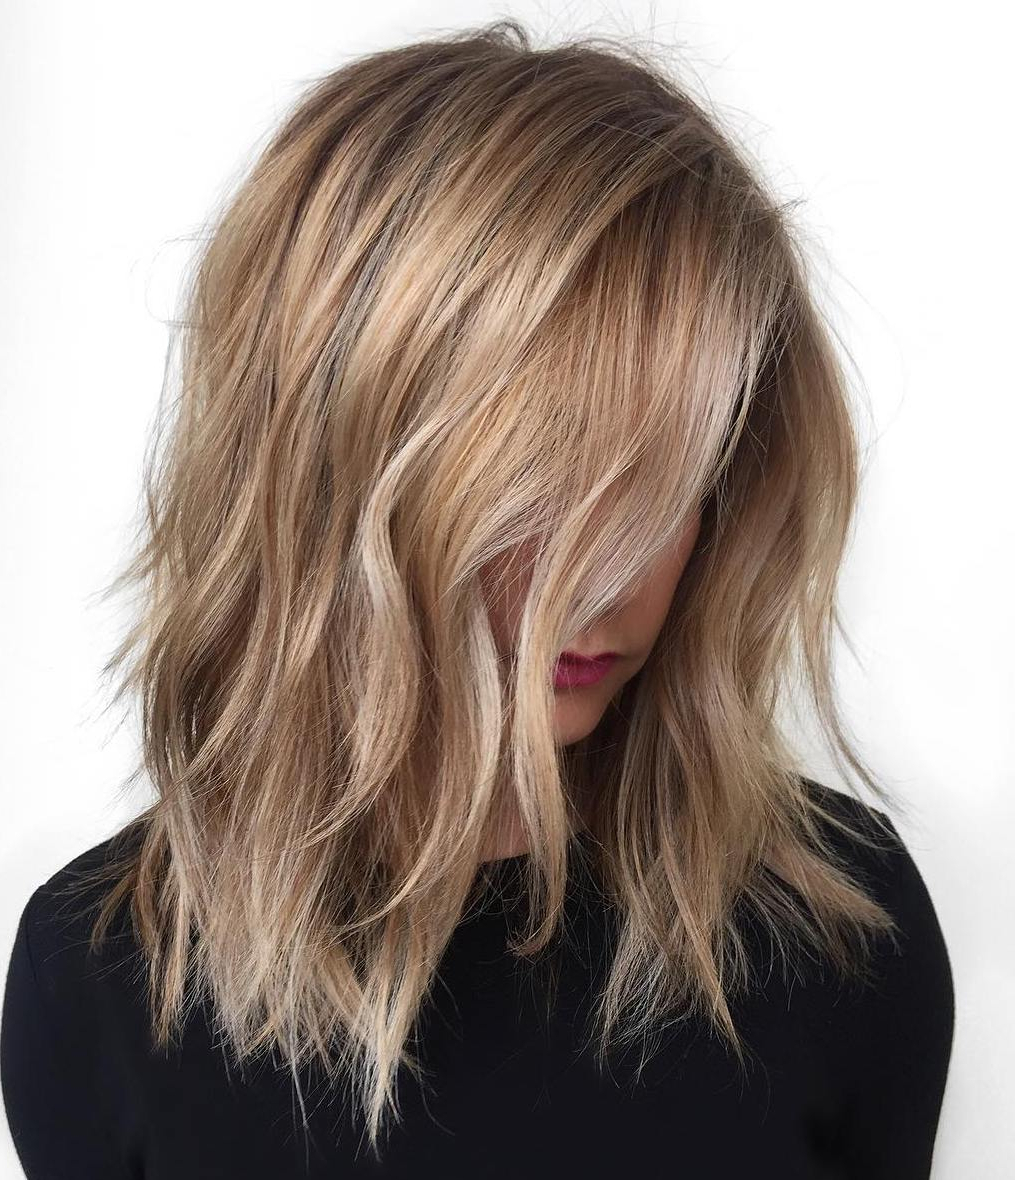 Newest Long Waves Hairstyles With Subtle Highlights Regarding 40 Styles With Medium Blonde Hair For Major Inspiration (View 14 of 20)